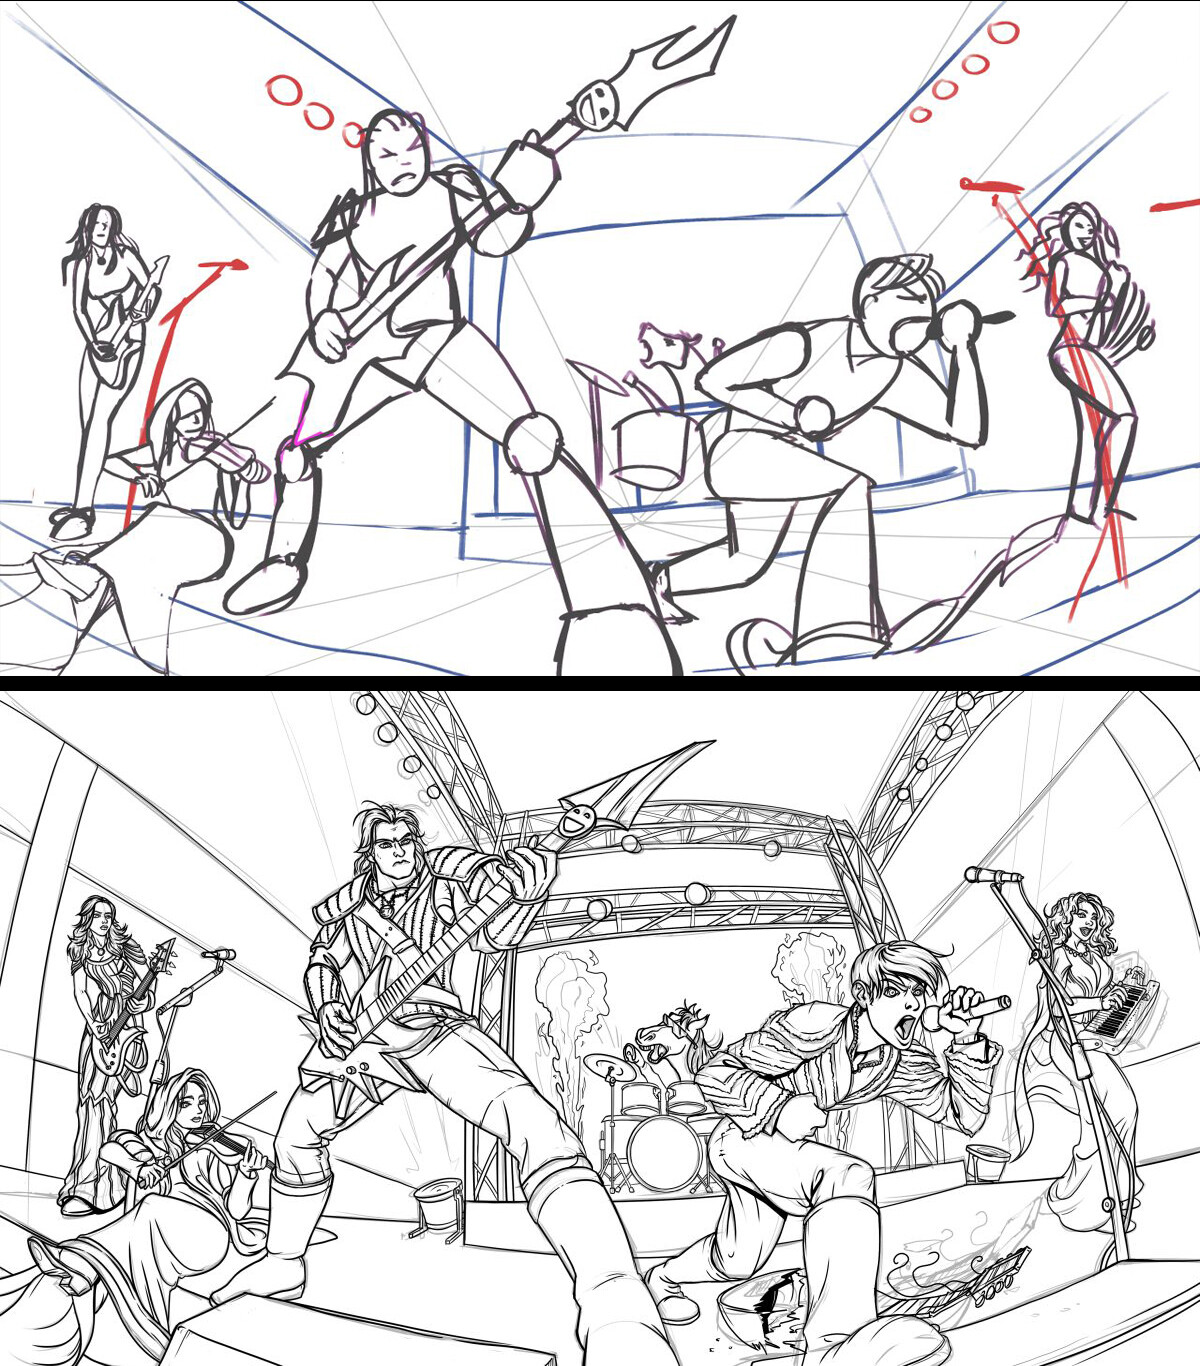 Rough sketch and lineart progress